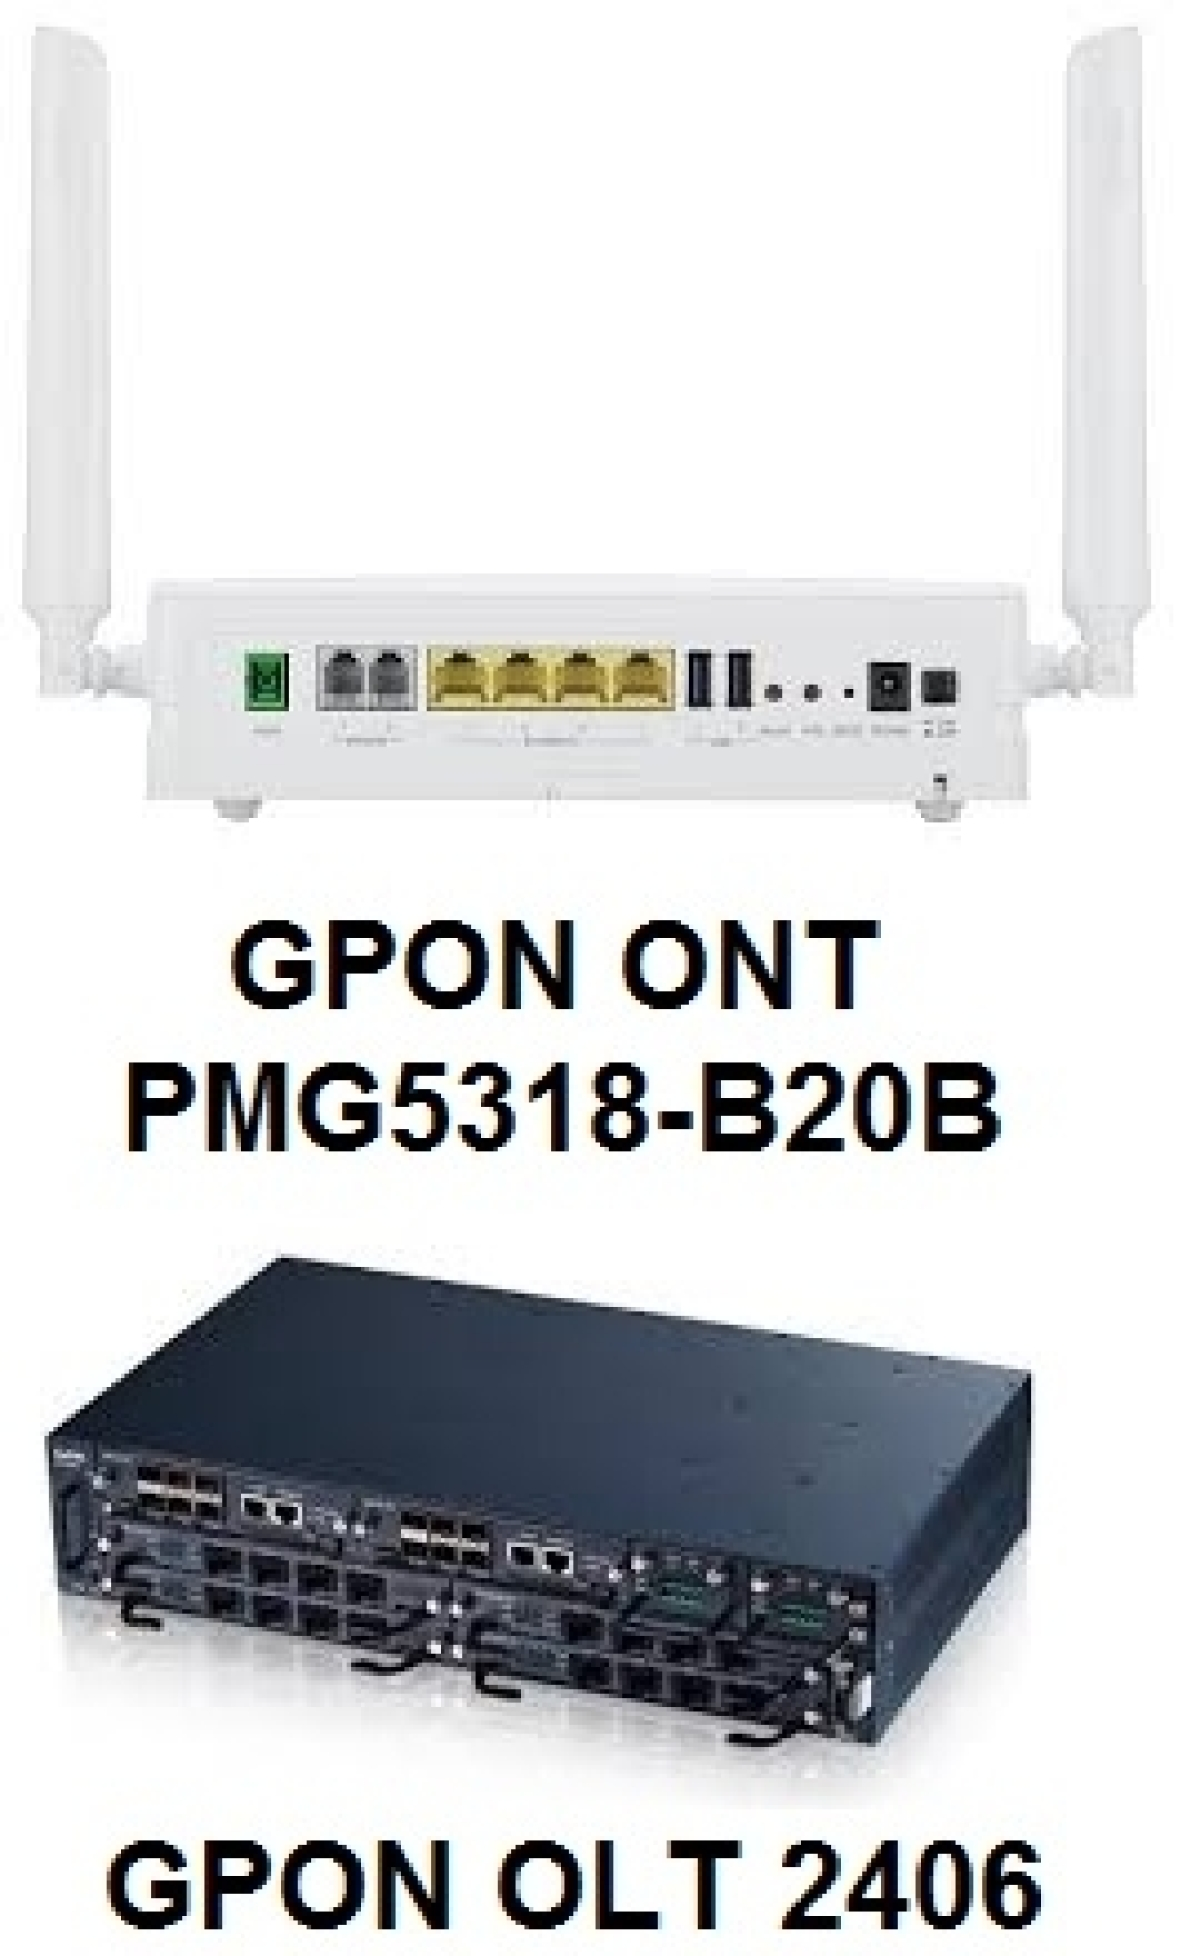 ZyXEL GPON Ultimate solution for high speed